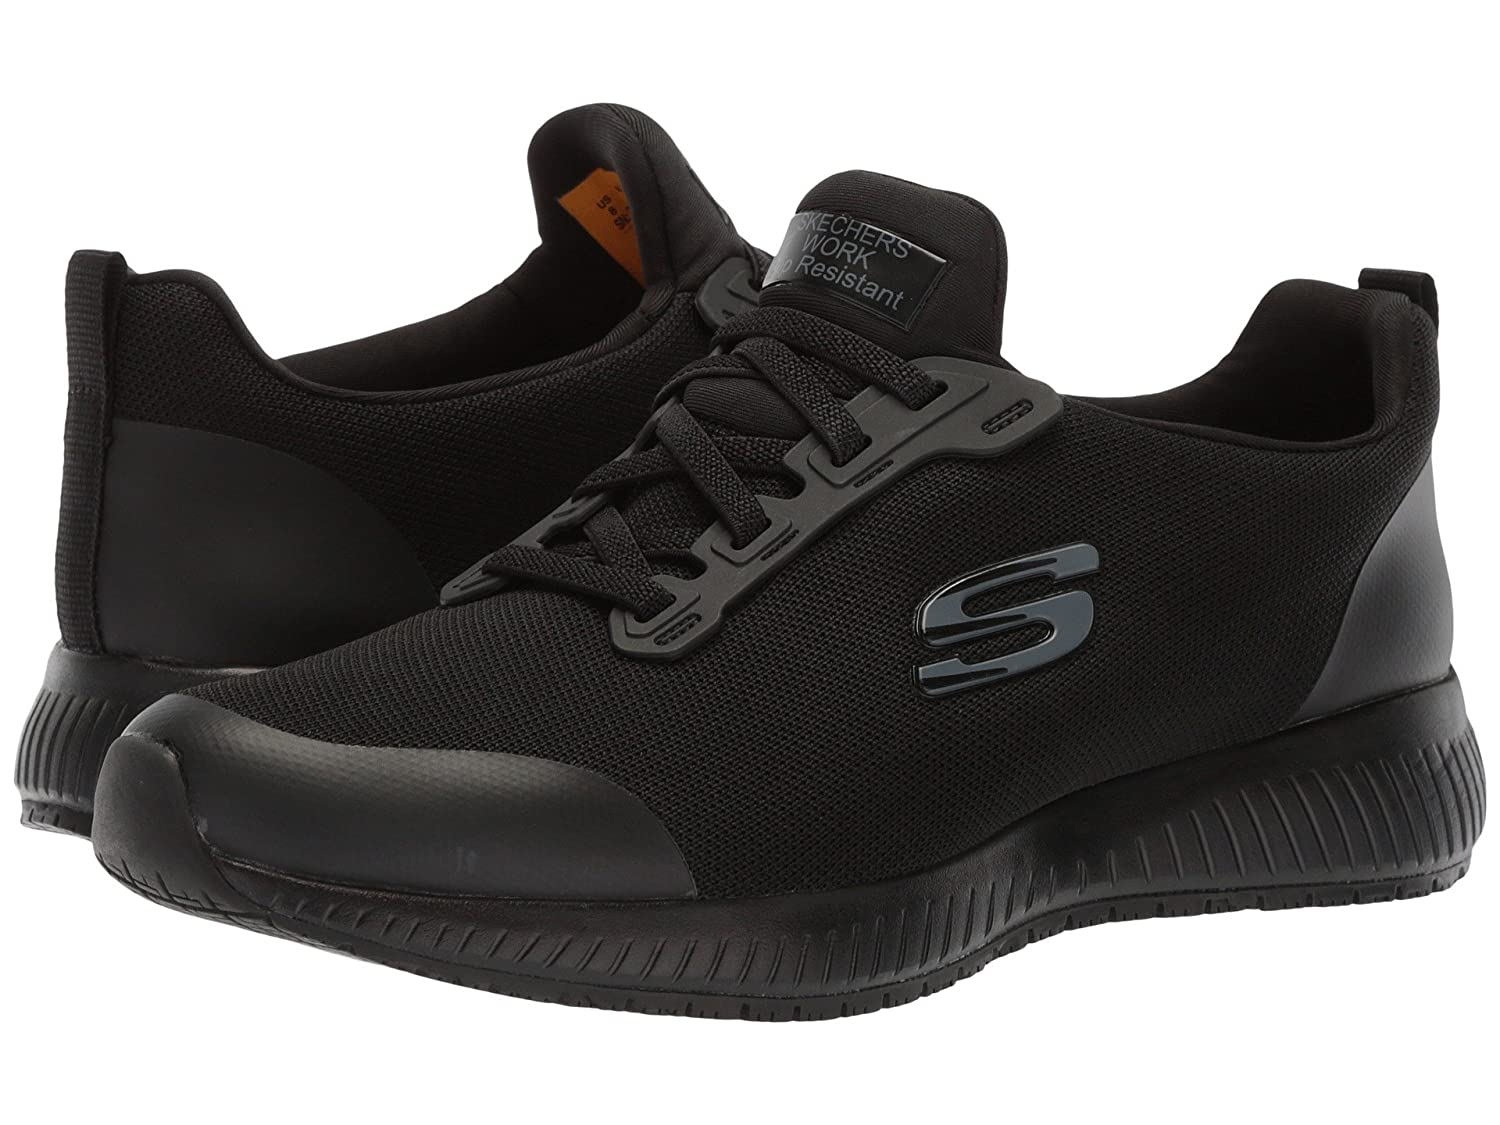 (スケッチャーズ) SKECHERS レディースワークシューズナースシューズ靴 Ghenter Bronaugh [並行輸入品] B07FS2S93V 5.5 (22.5cm) B Medium|Black Mesh/Water/Stain Repellent Treatment Black Mesh/Water/Stain Repellent Treatment 5.5 (22.5cm) B Medium